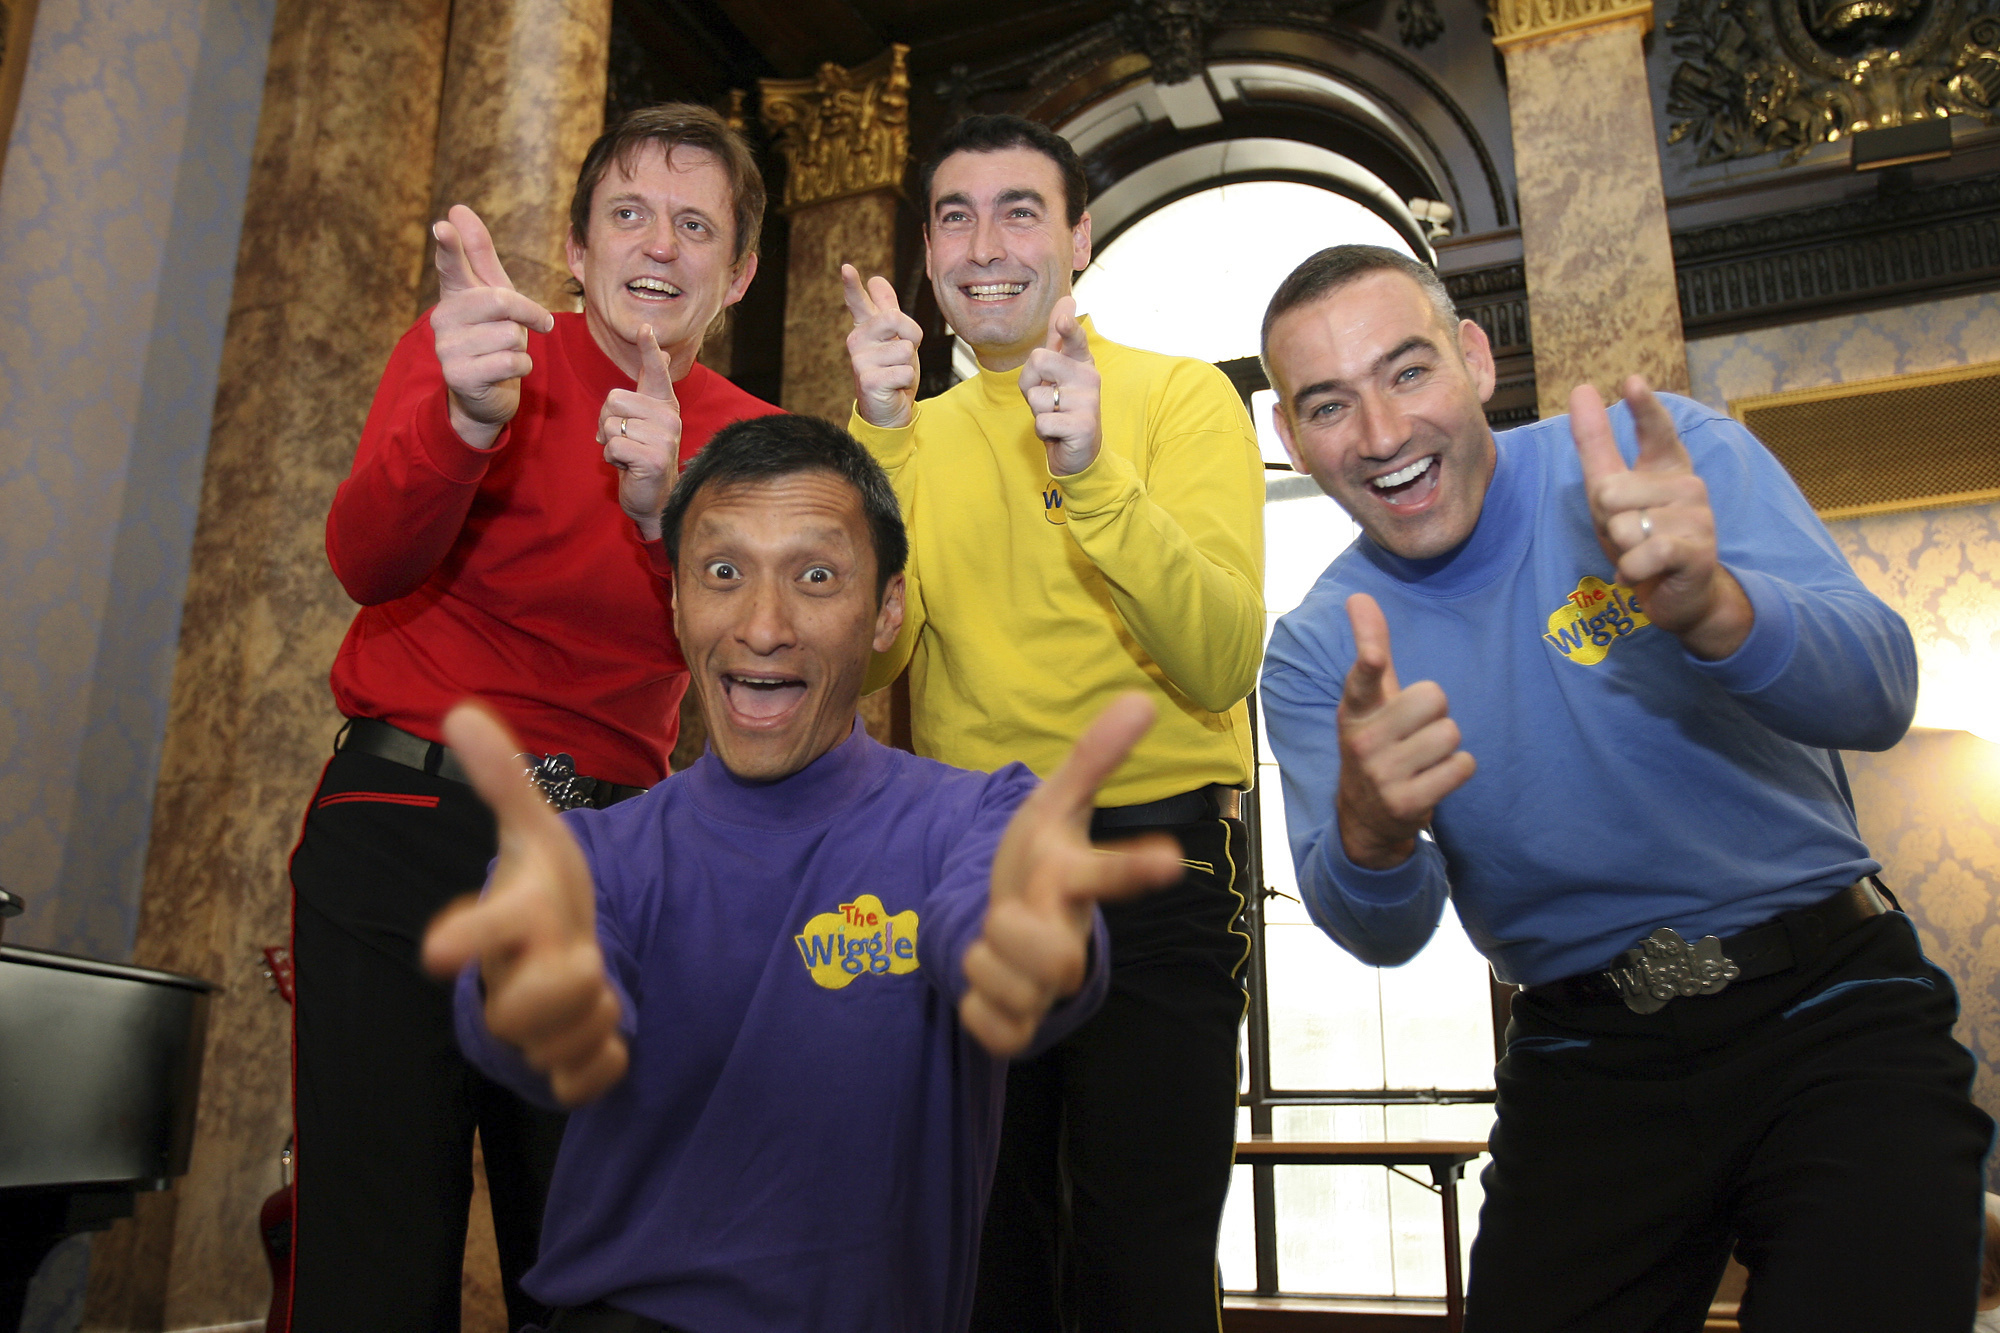 Murray Cook, Greg Page, Jeff Fatt, Anthony Field